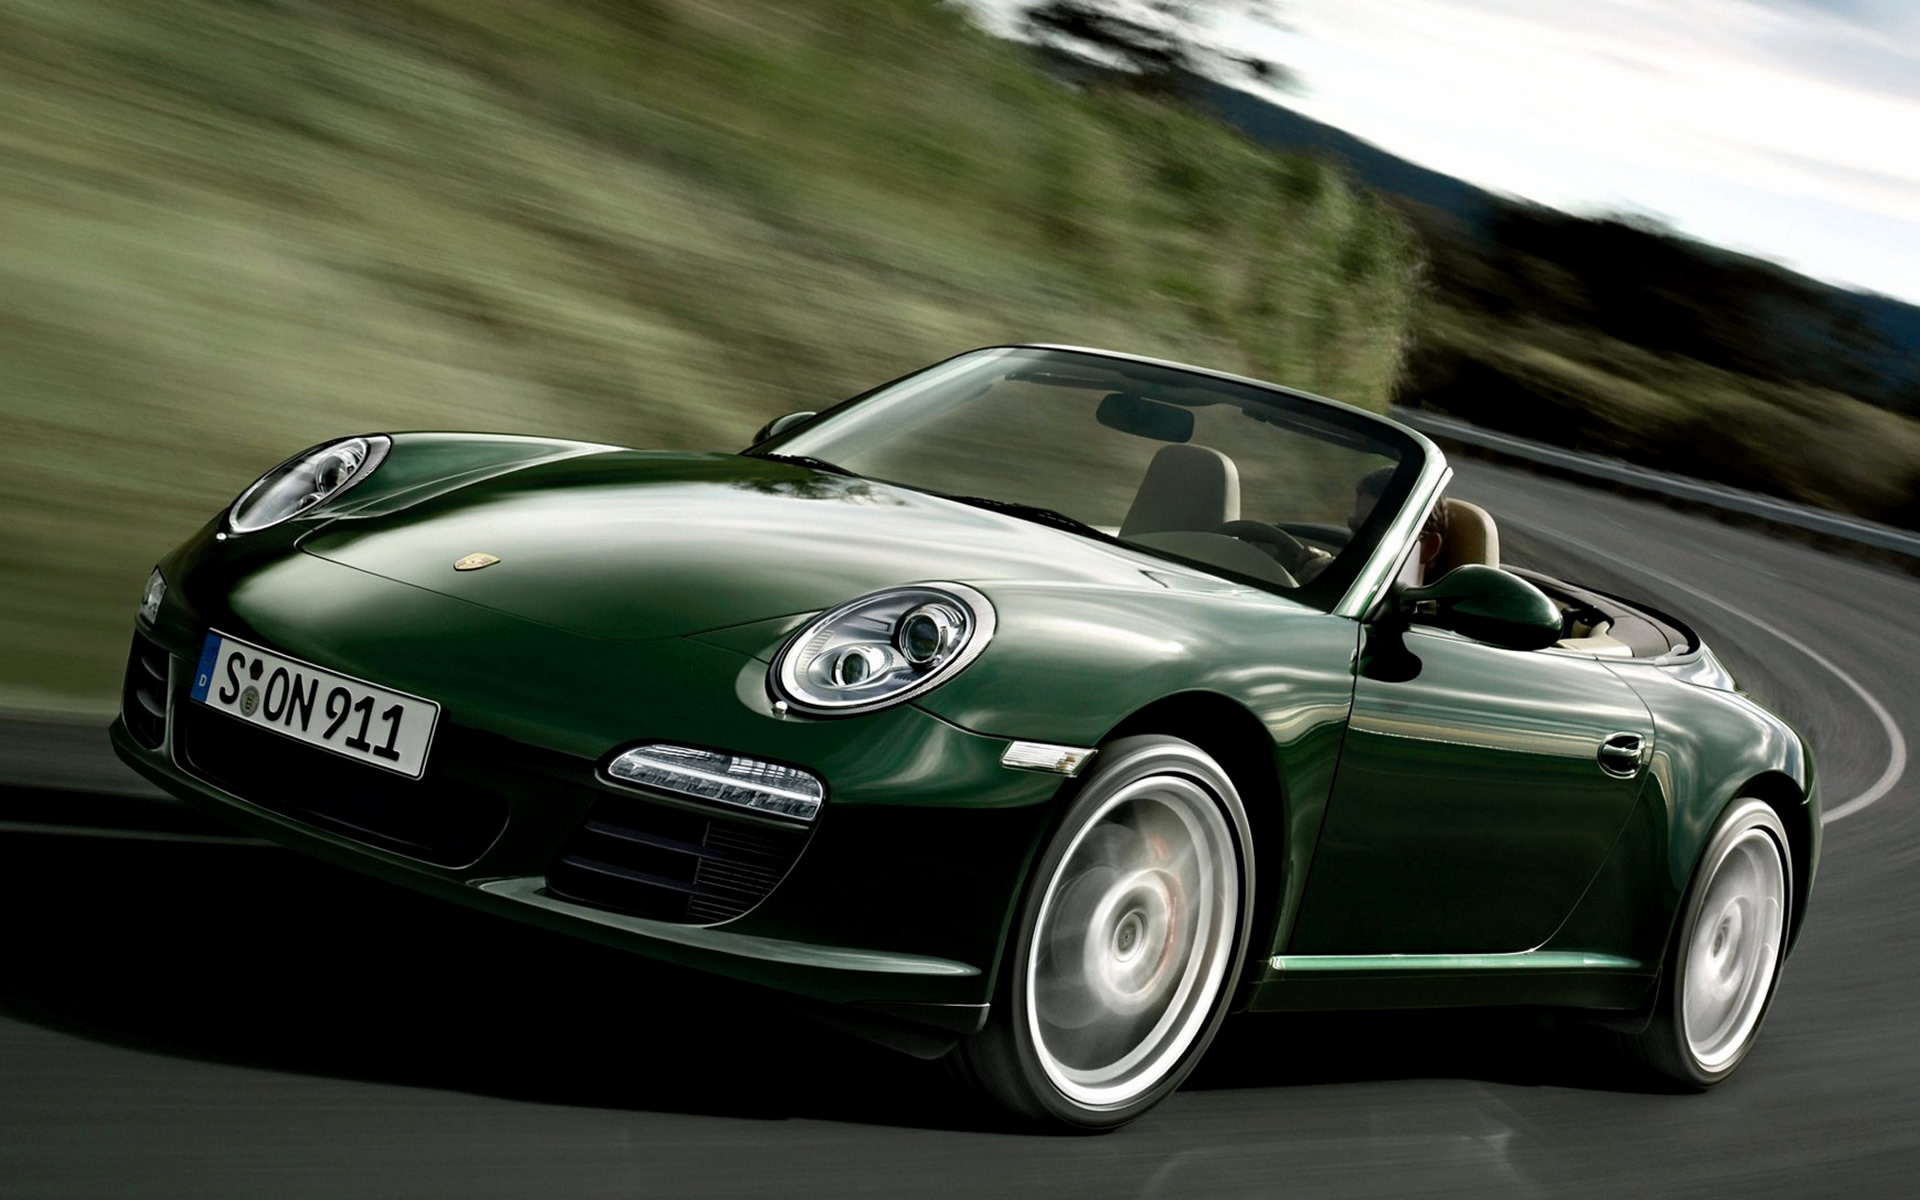 Porsche 911 Carrera S Cabriolet (2008) Wallpapers and HD ...